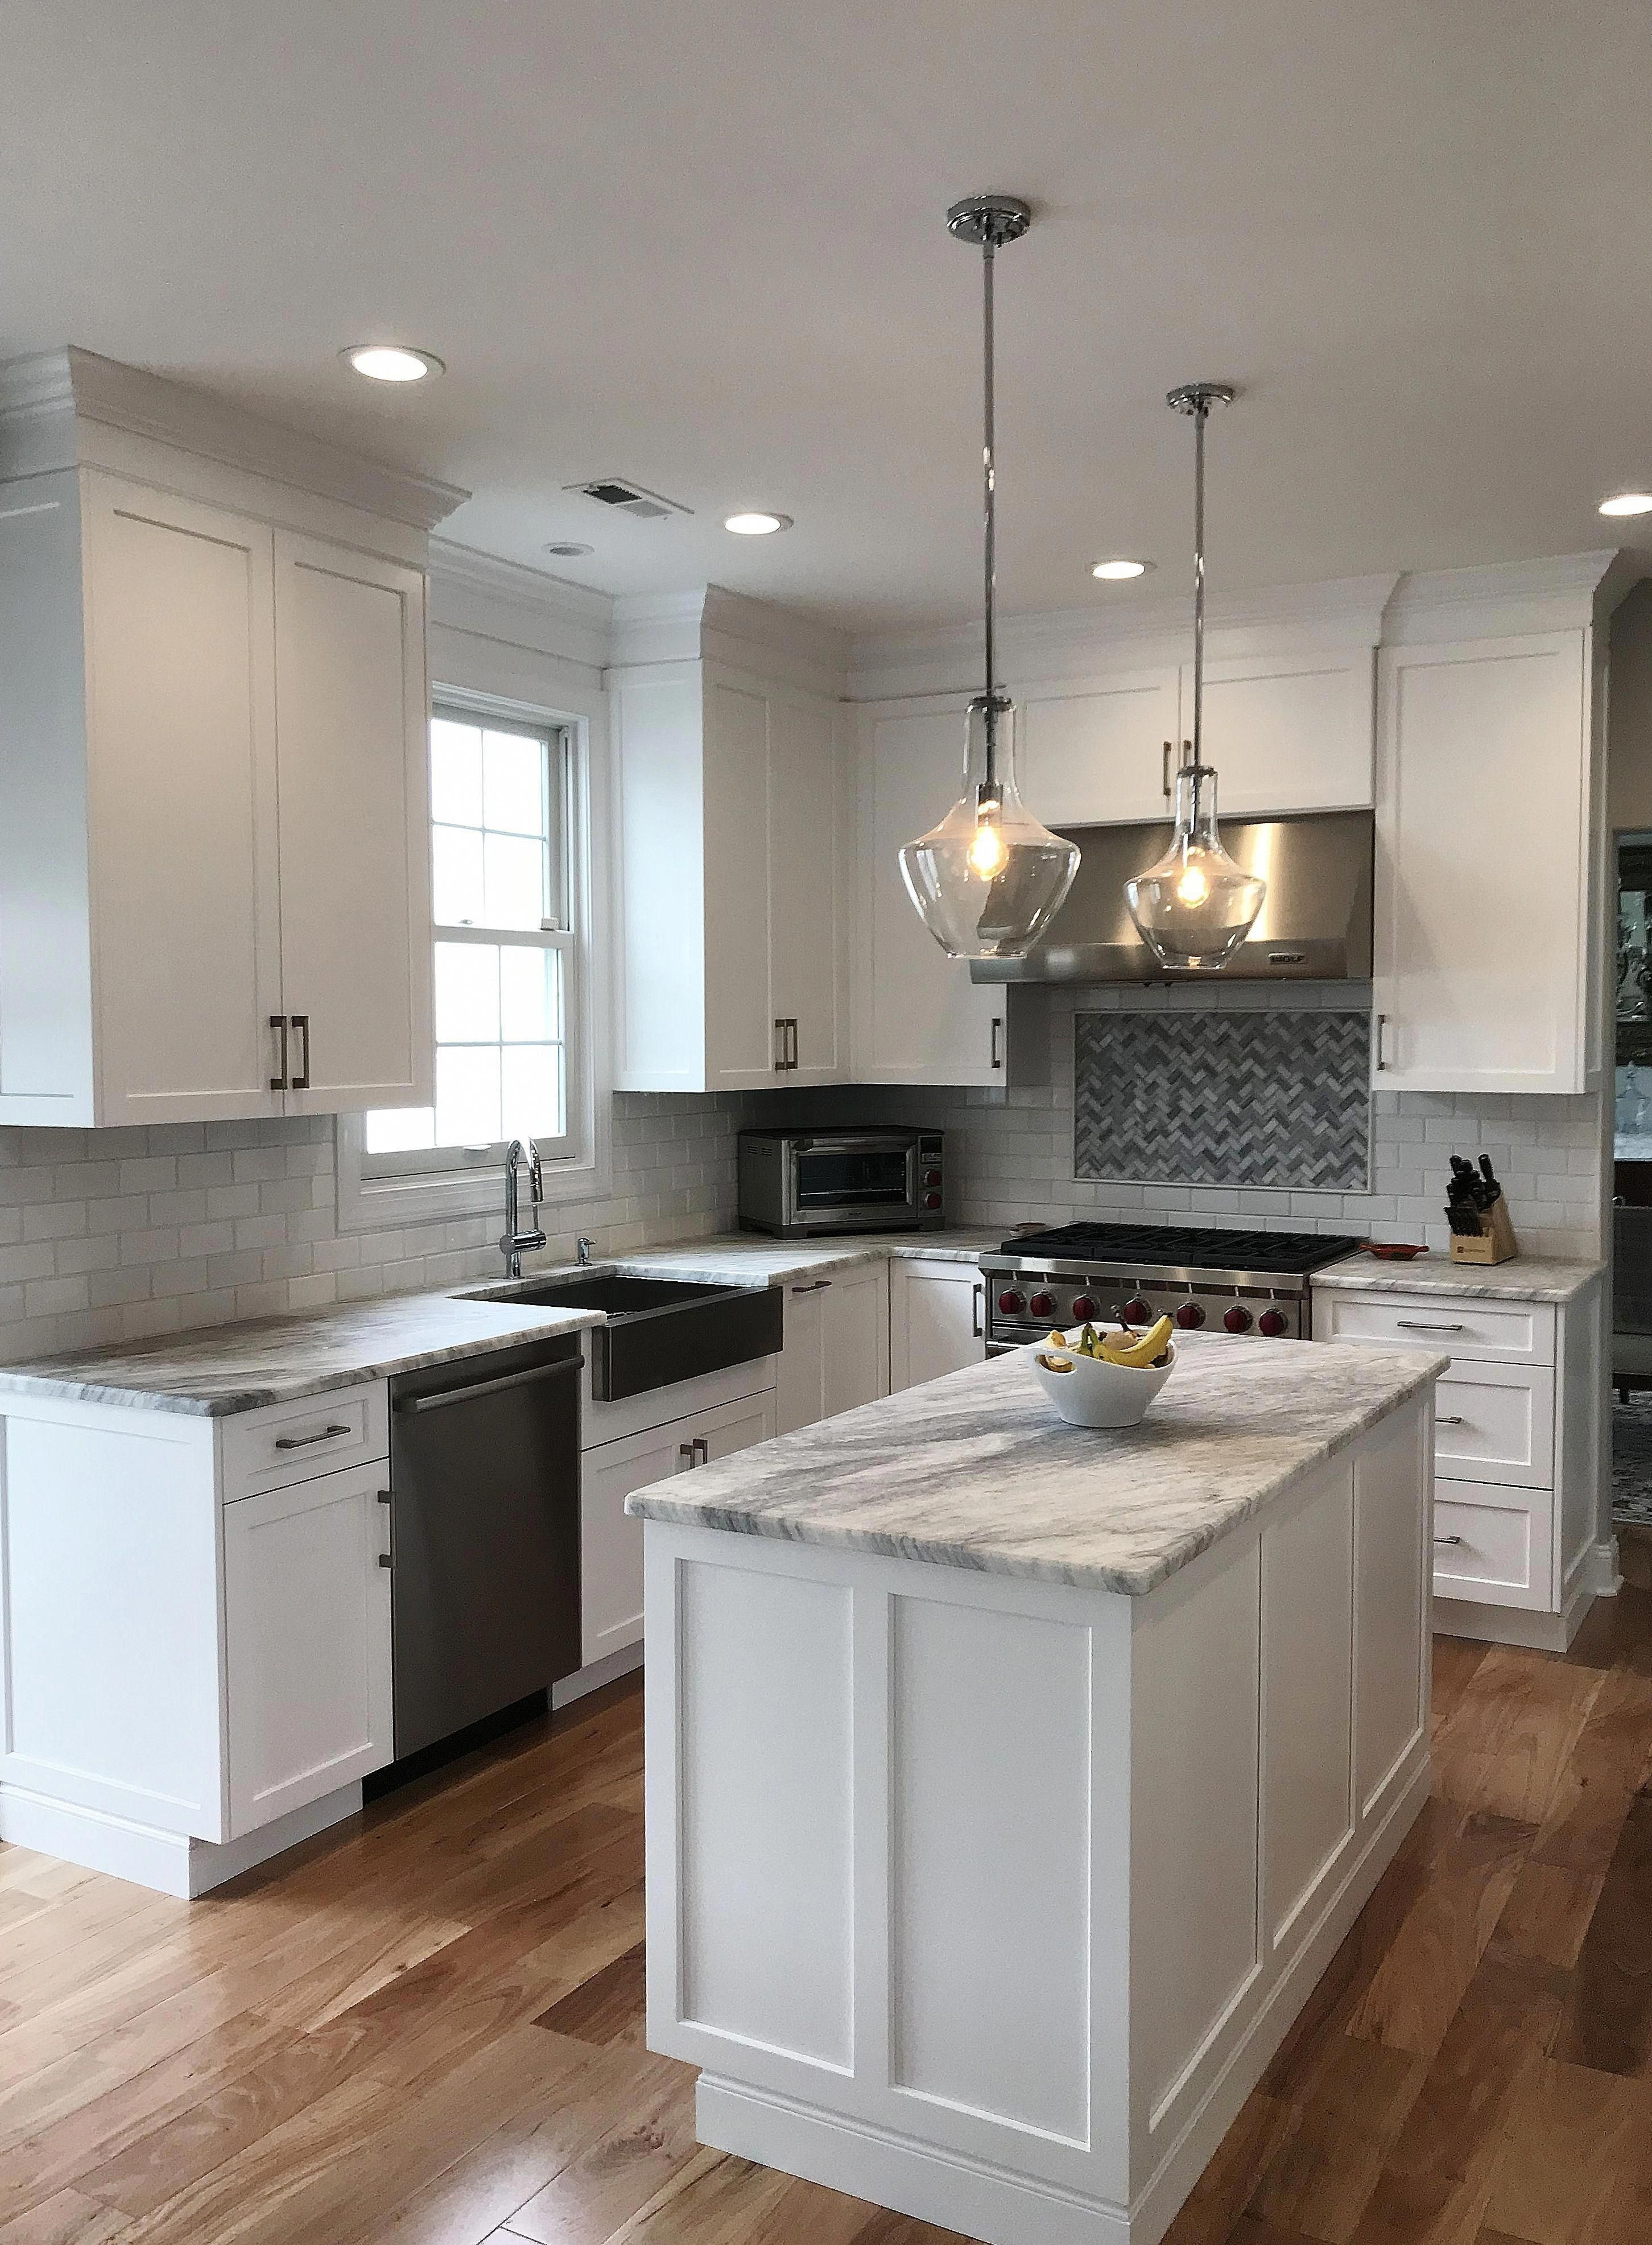 Depending On The Scale Of Your Project You May Not Need A Full On Architectural Commission W Kitchen Remodel Countertops Classy Kitchen Kitchen Remodel Small